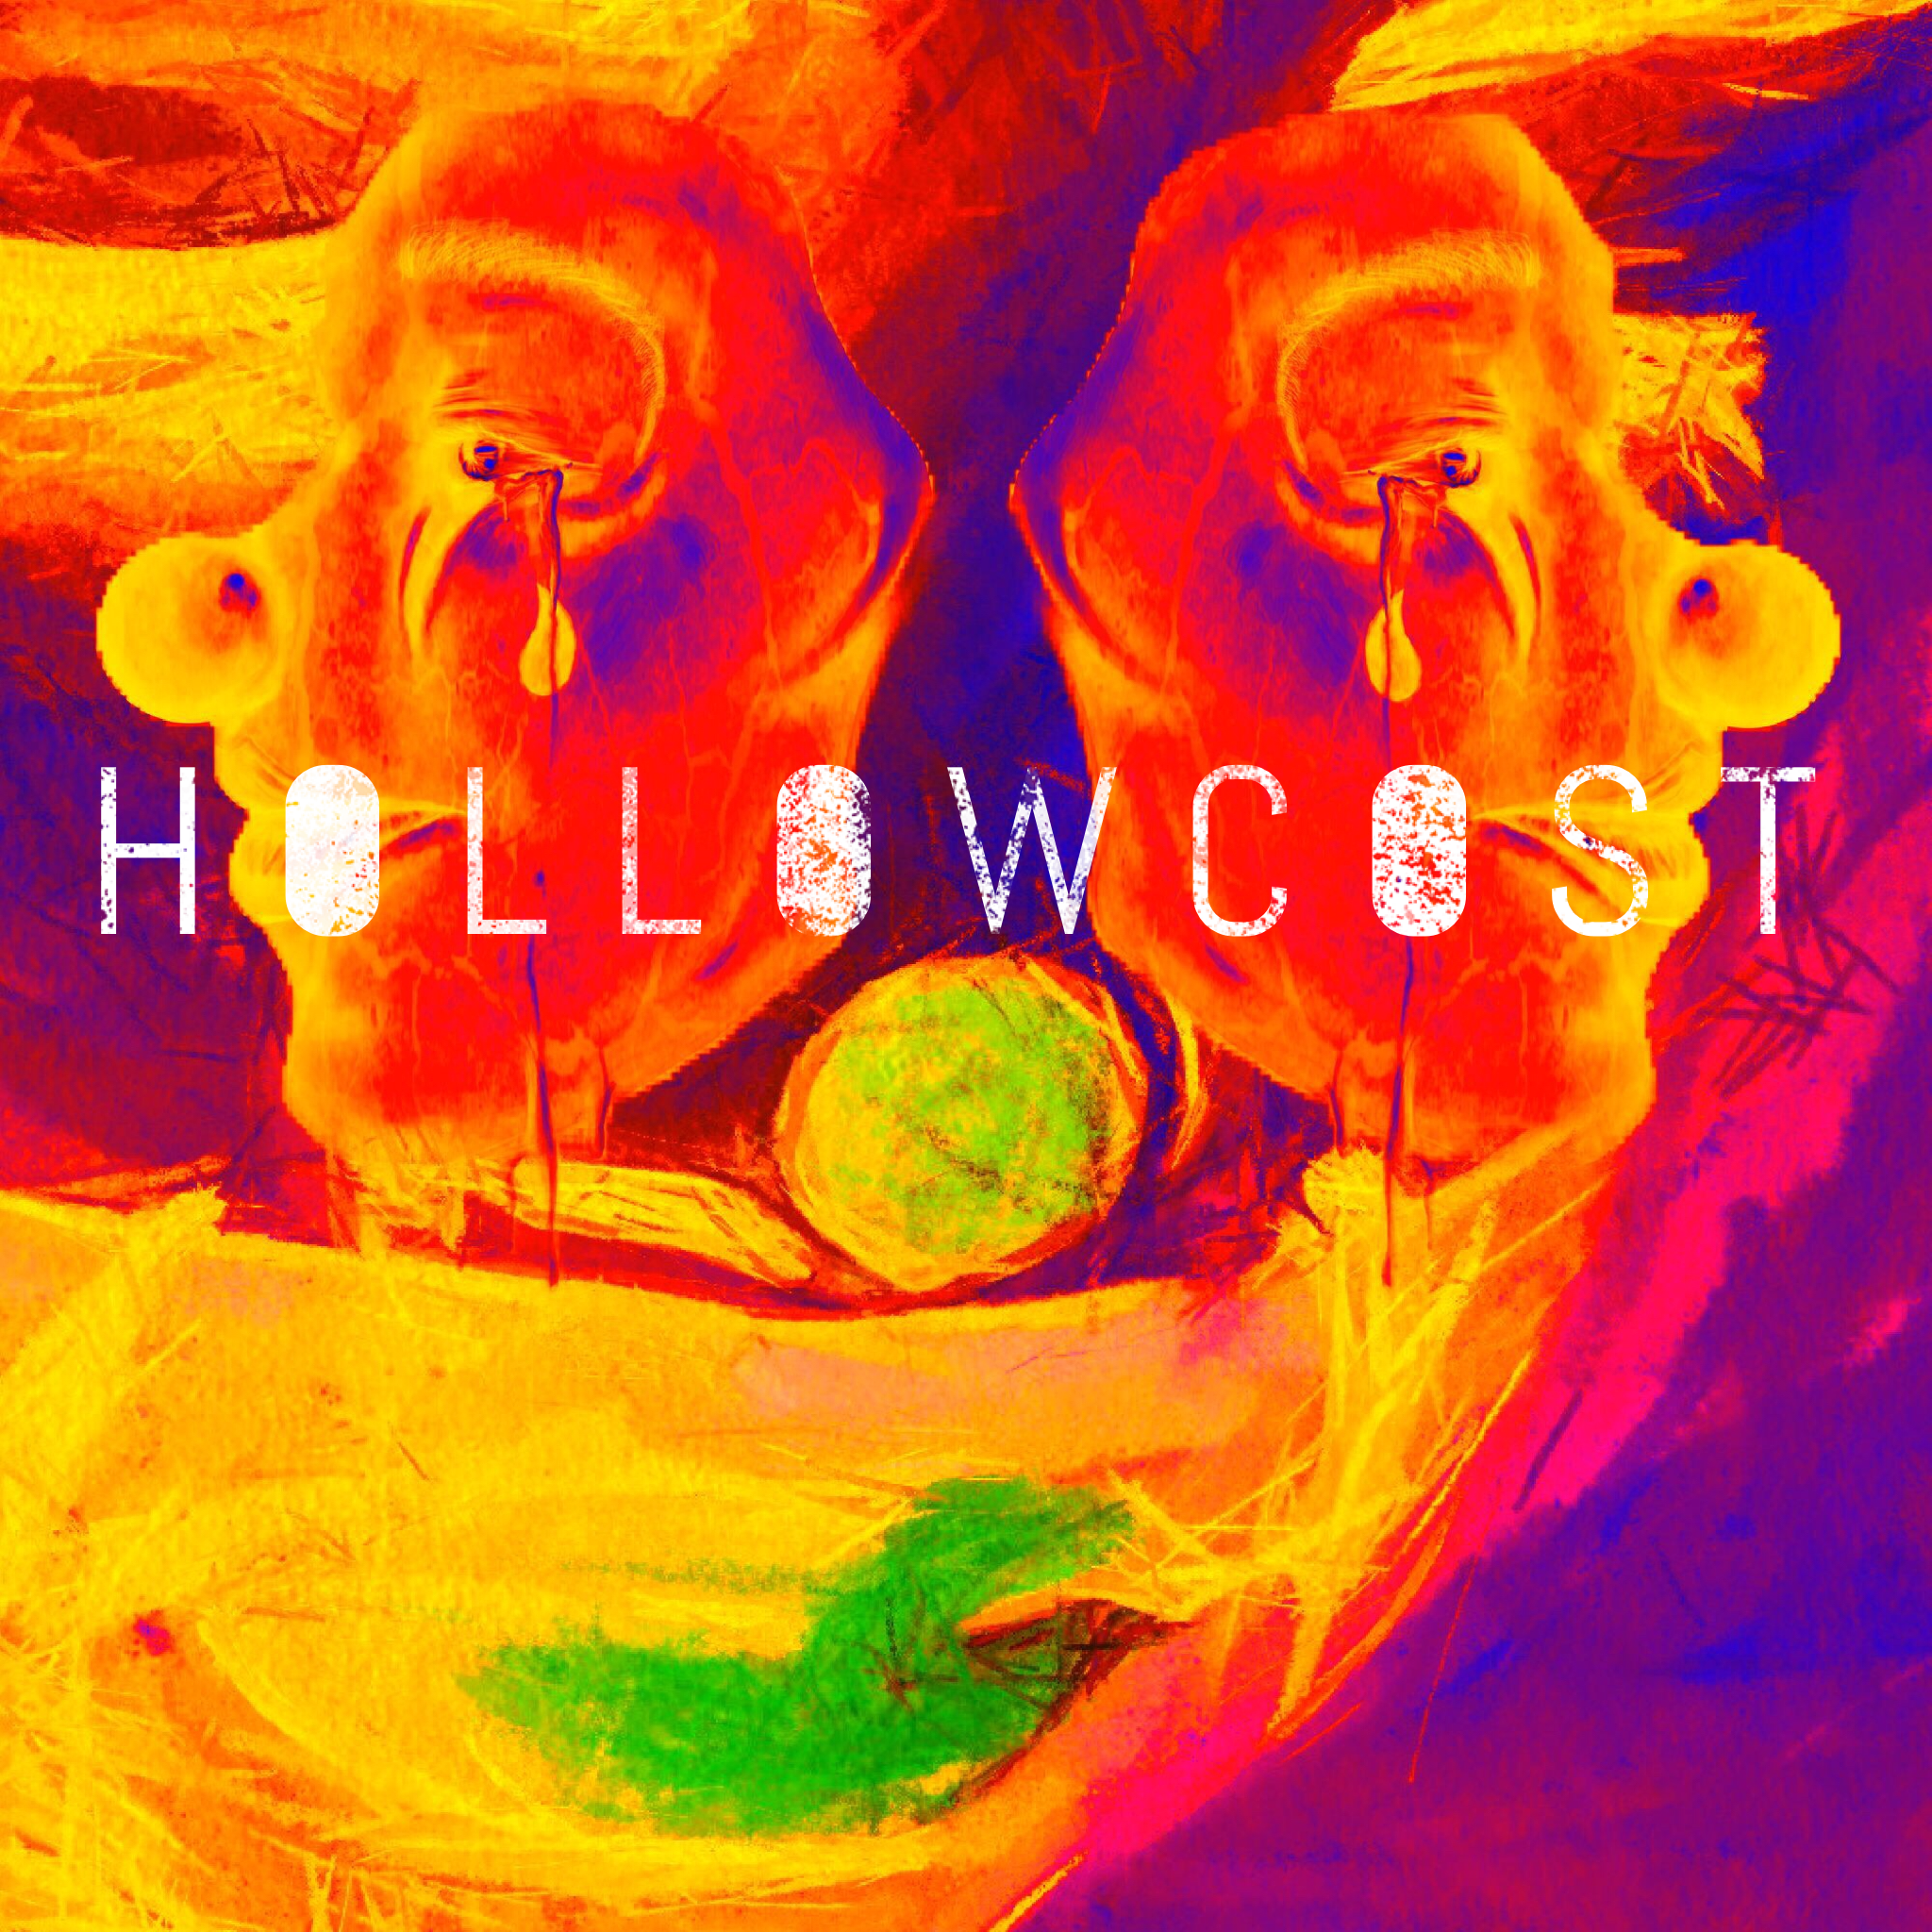 HollowCost